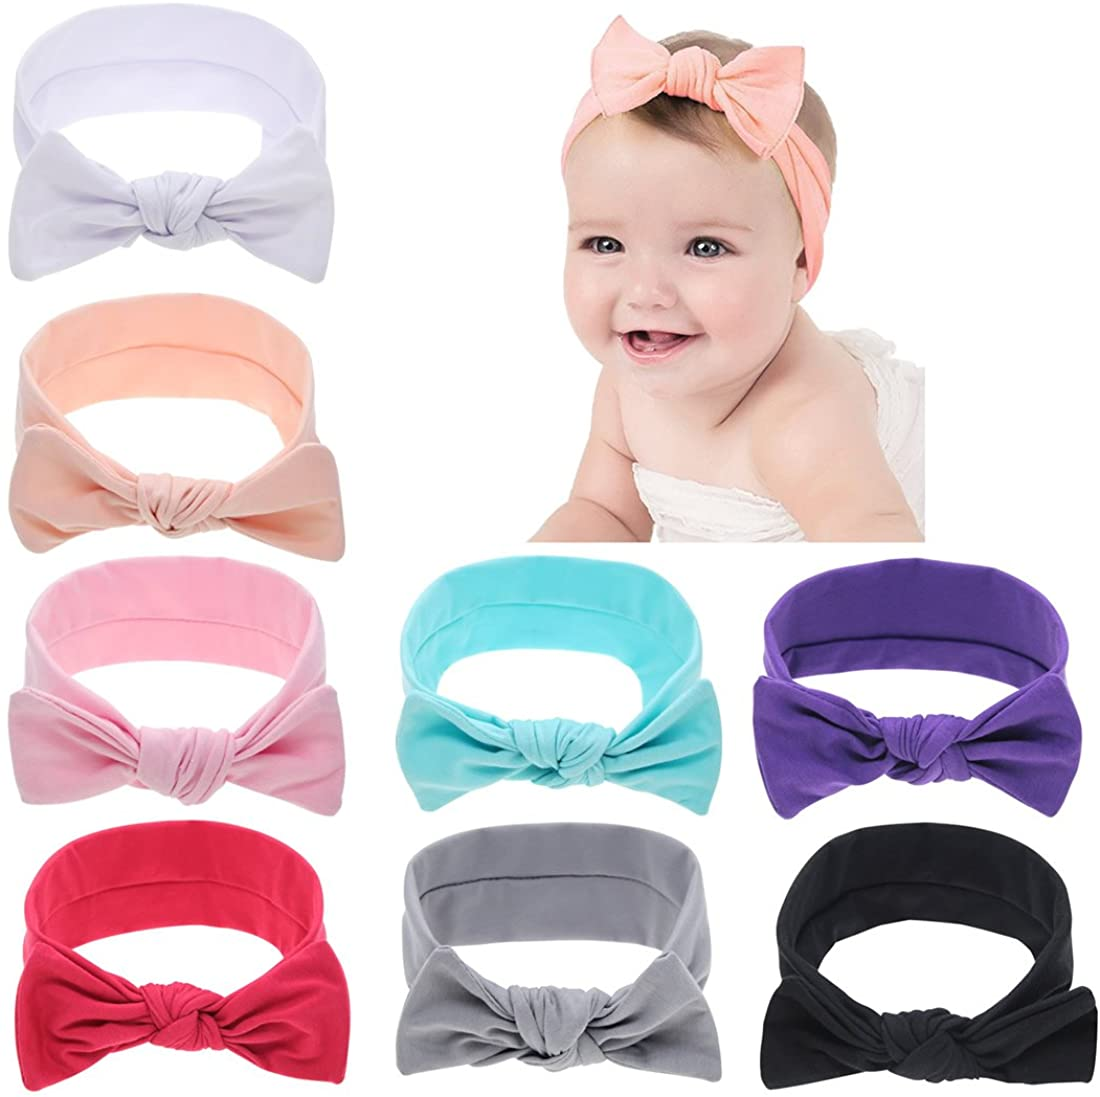 inSowni Boutique Stretchy Bandana Turban Solid Bow Headbands Hair Accessories for Baby Girls Toddlers Infants Kids